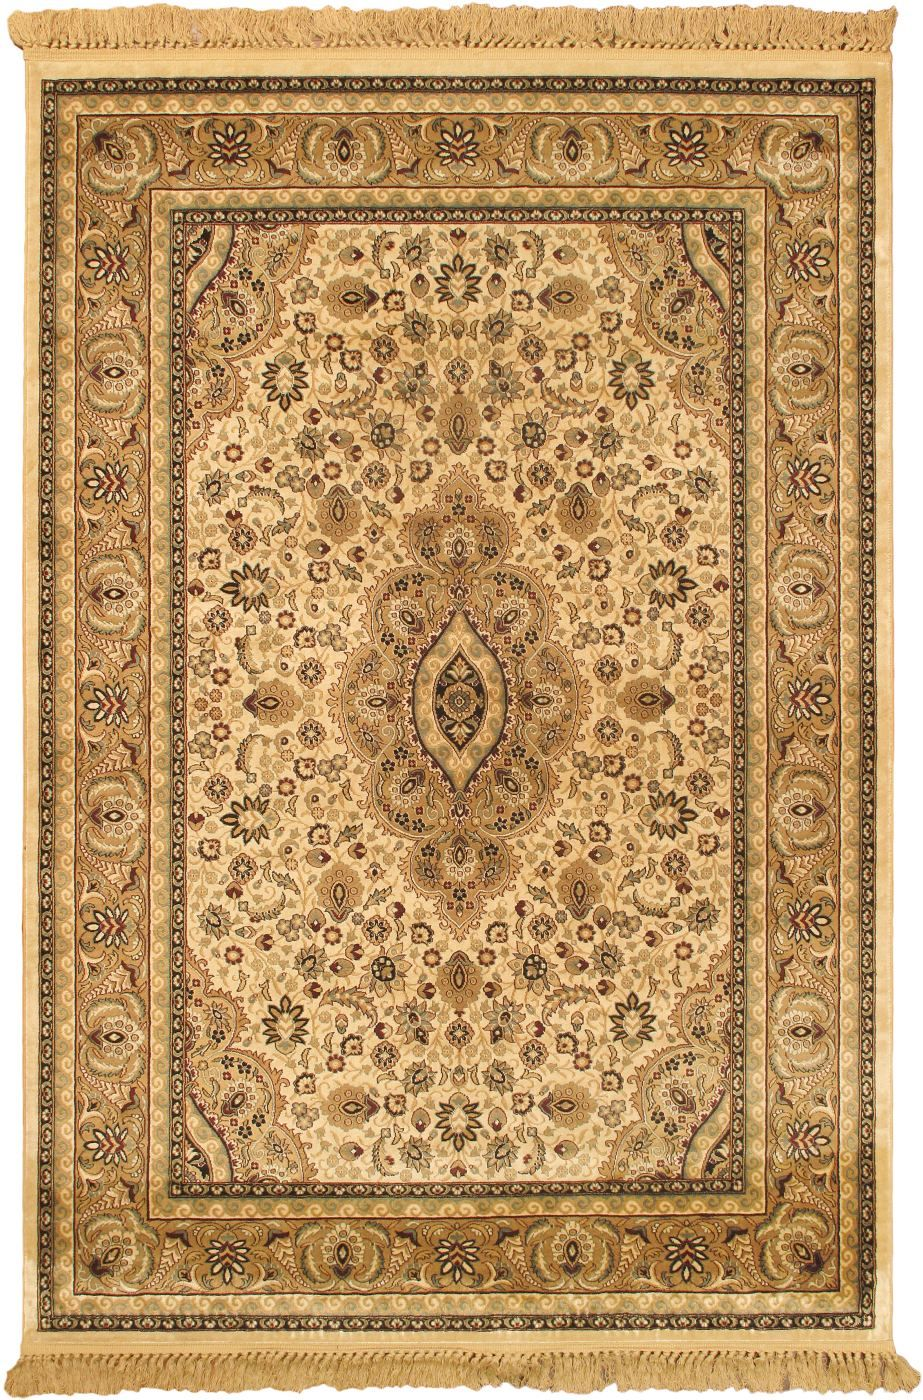 ecarpet gallery nain kashmir traditional area rug collection